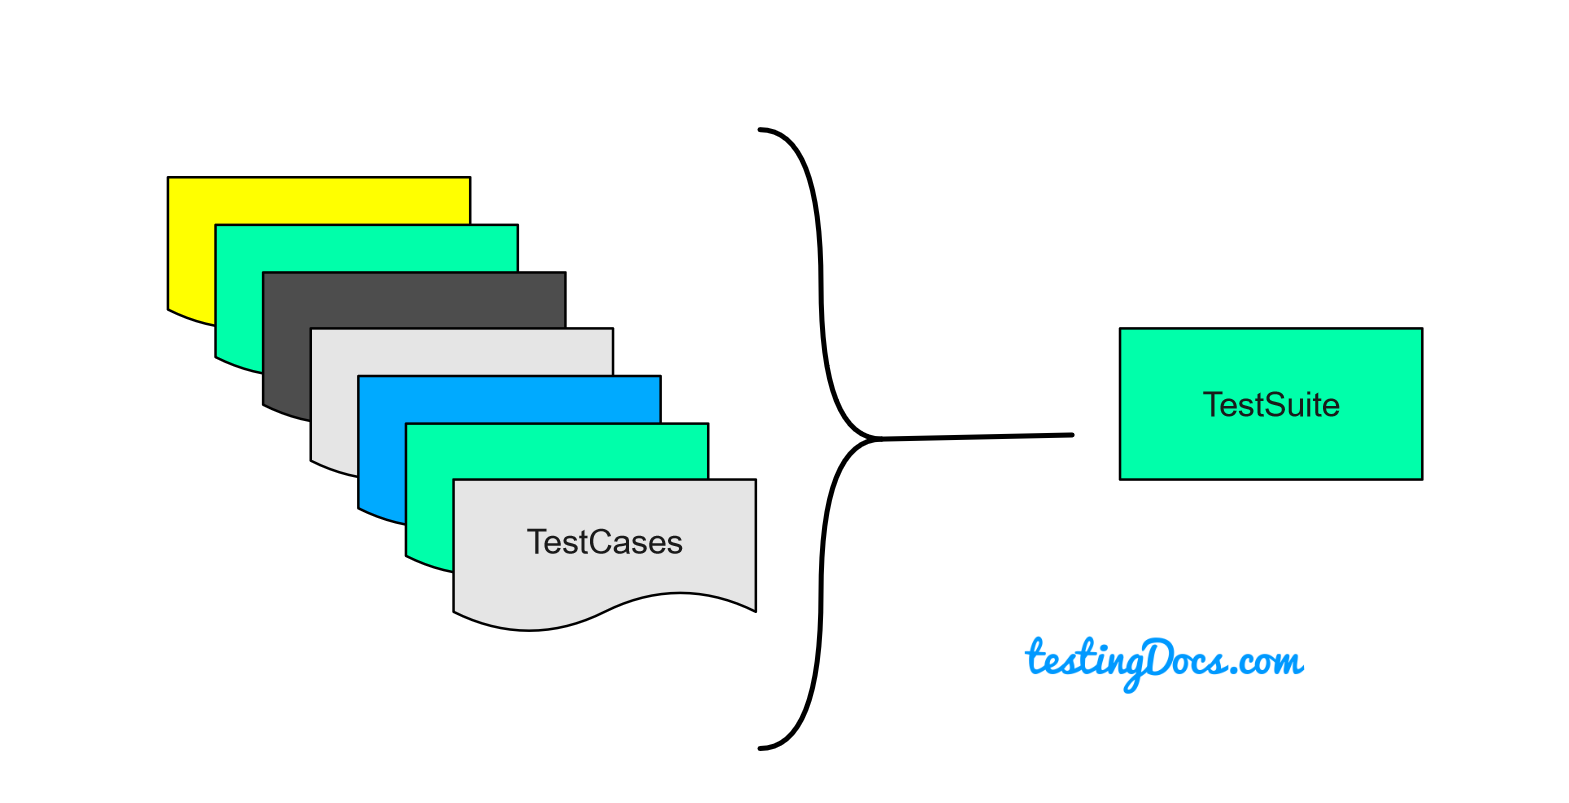 TestSuite and TestCases